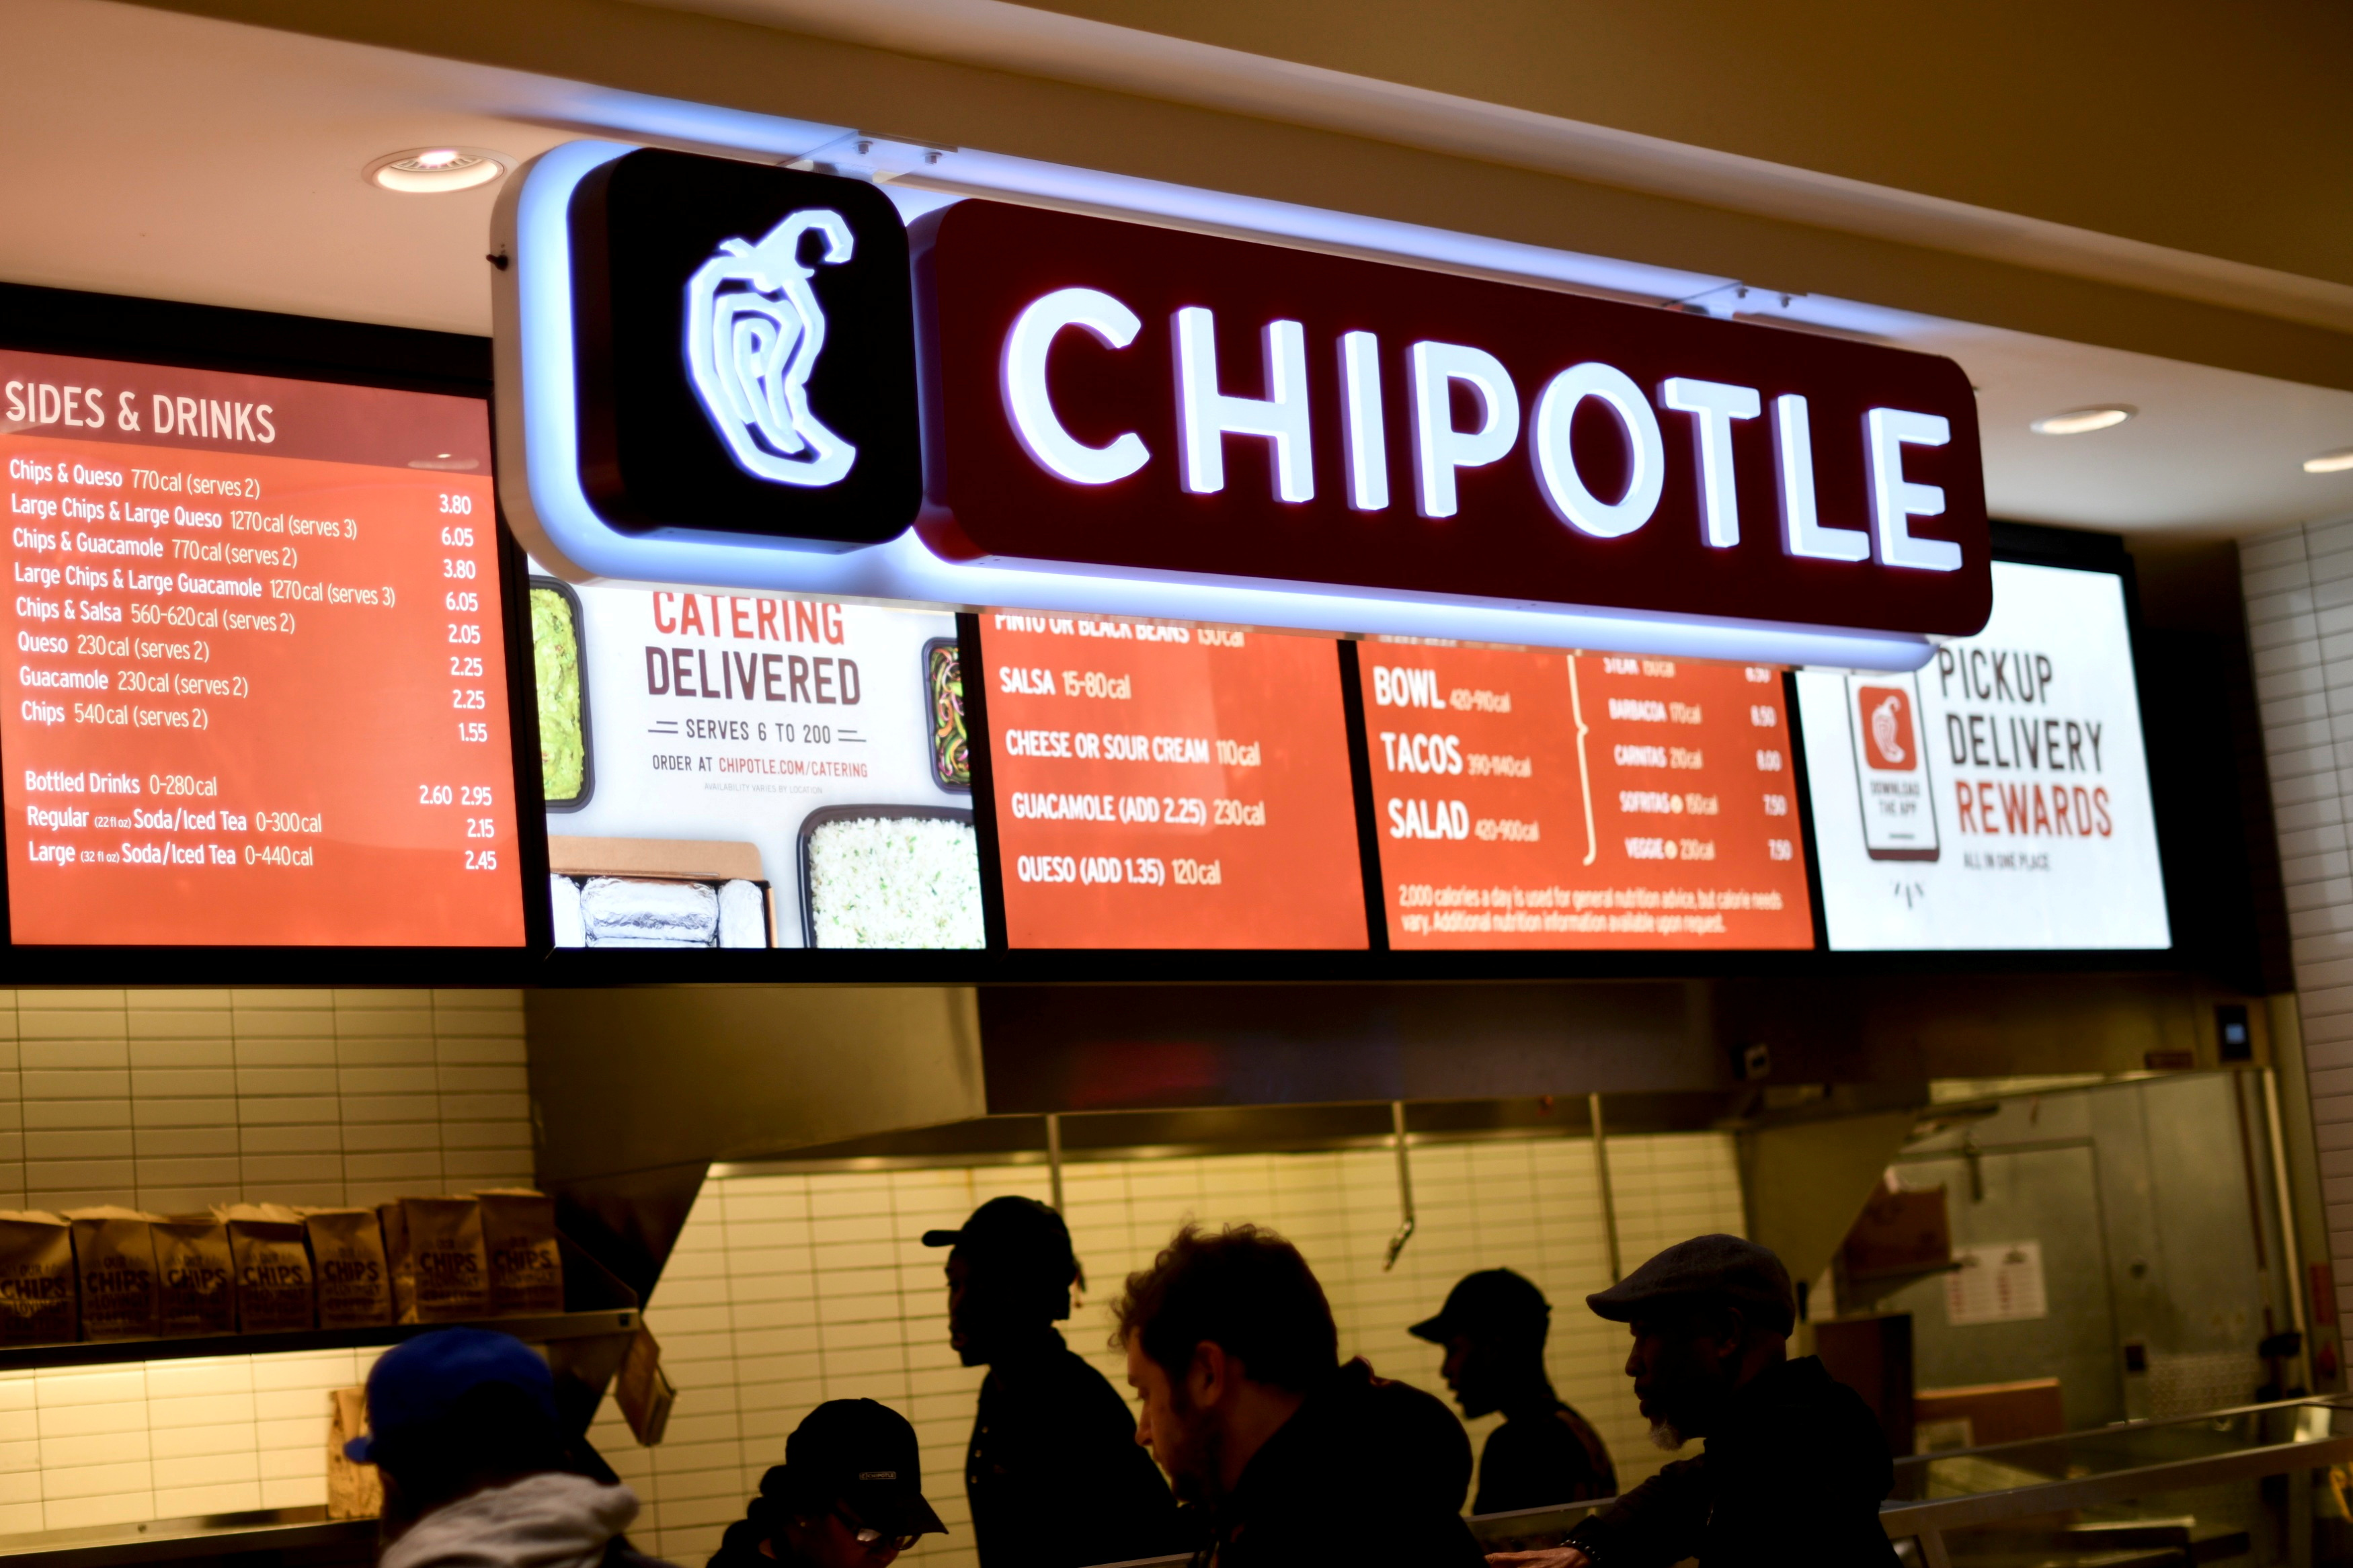 Customers order from a Chipotle restaurant as pre-Thanksgiving and Christmas holiday shopping accelerates at the King of Prussia Mall in King of Prussia, Pennsylvania, U.S. November 22, 2019. REUTERS/Mark Makela